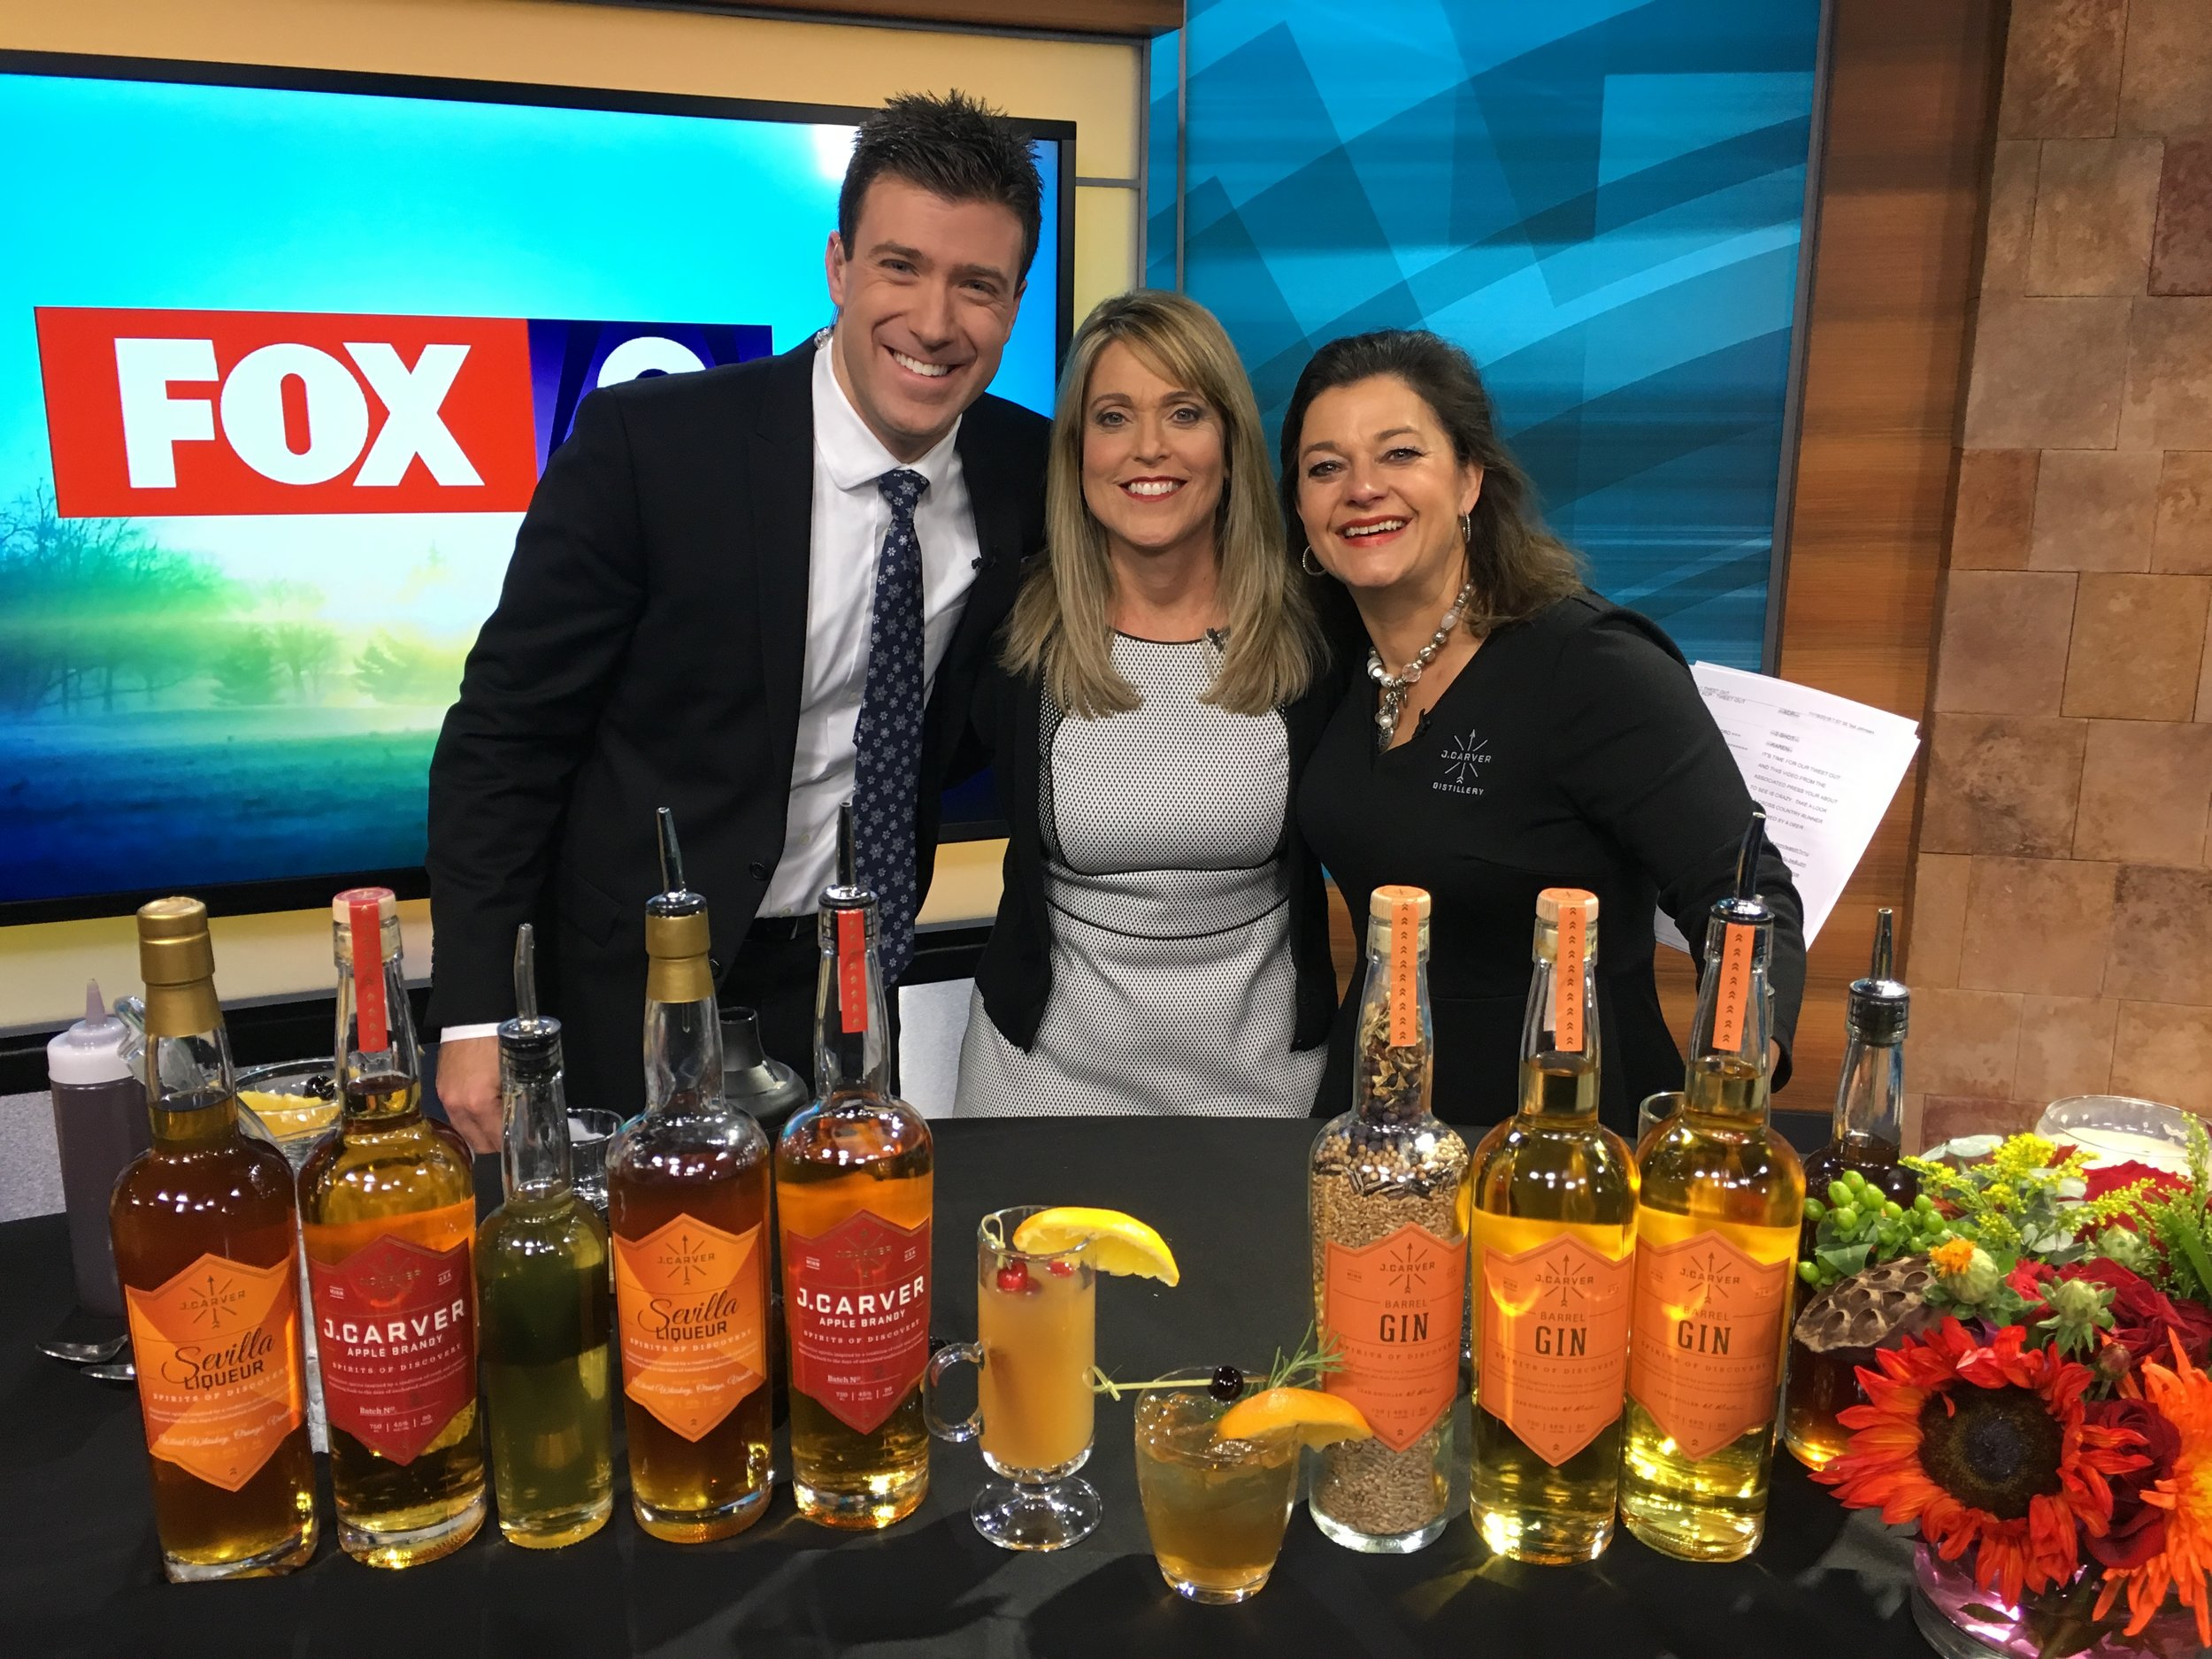 Fox 9 Saturday Morning Show featuring J. Carver Barrel Gin, Apple Brandy and Sevilla Liqueur